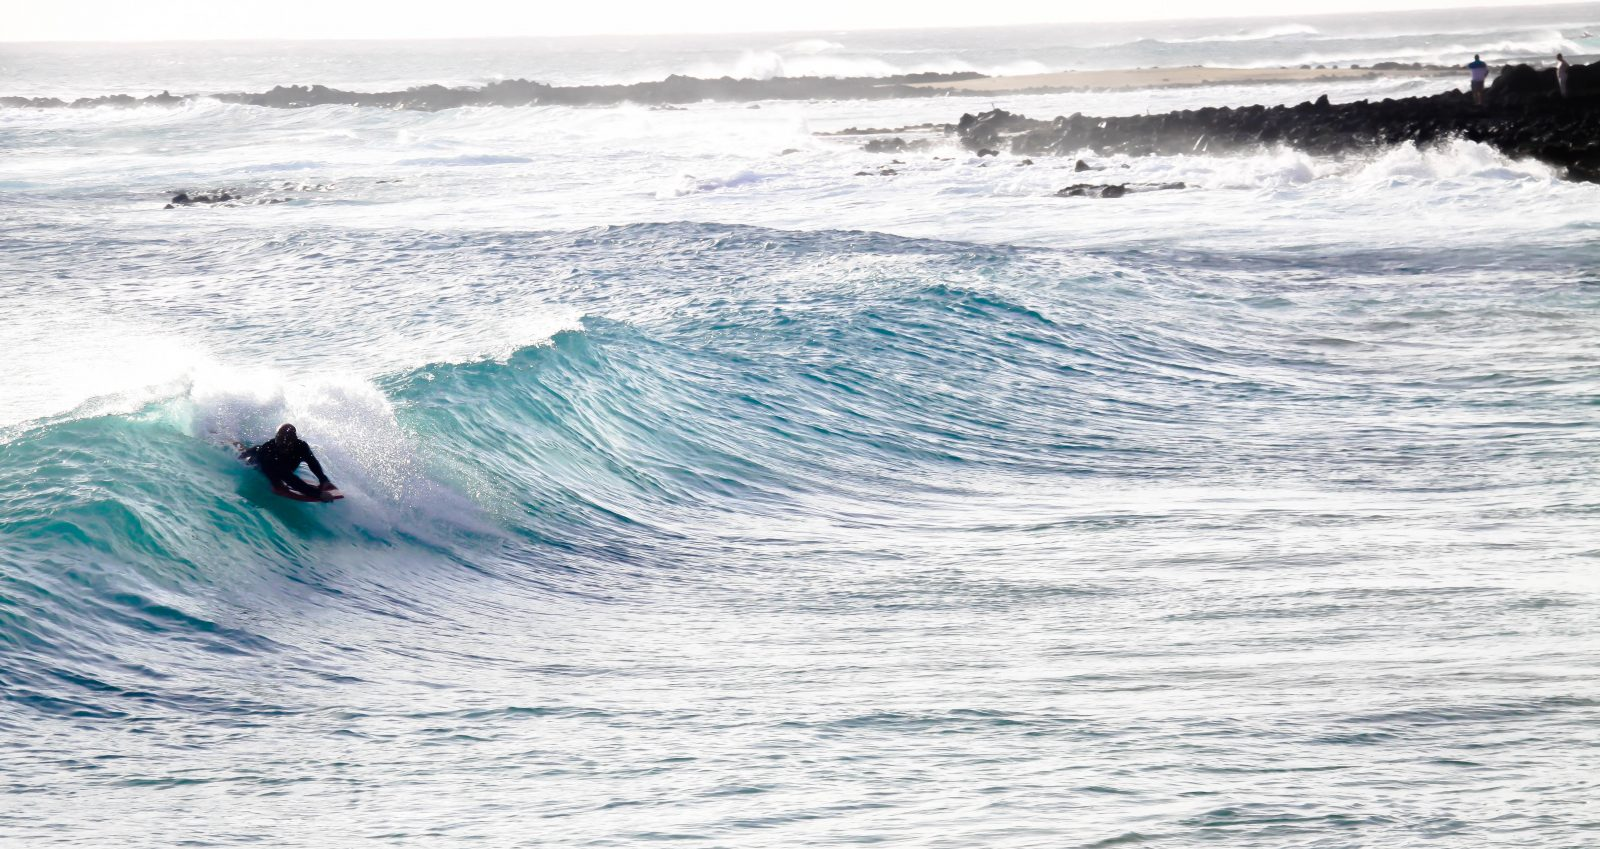 A local is catching some waves at Brennecke's Beach